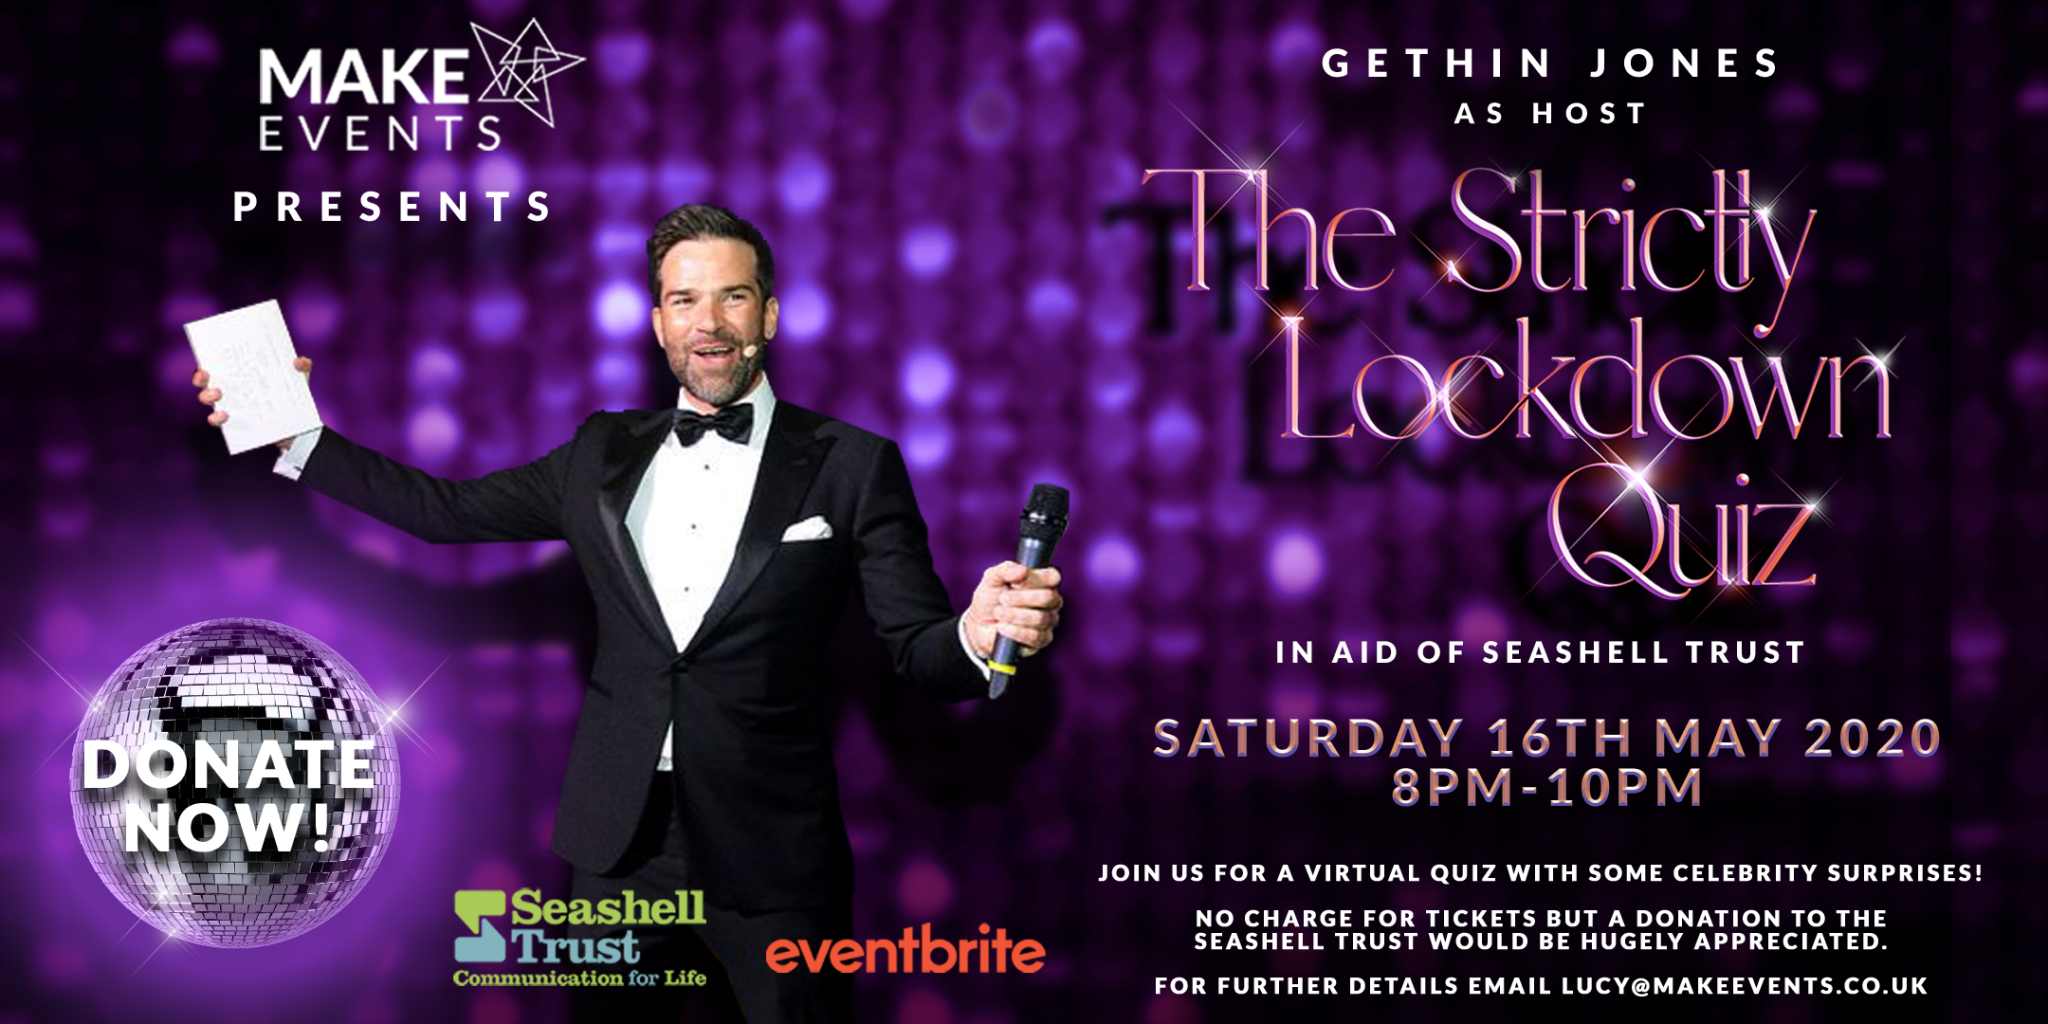 Make Events | Corporate and Virtual Events Company Manchester | The Strictly Lockdown Quiz